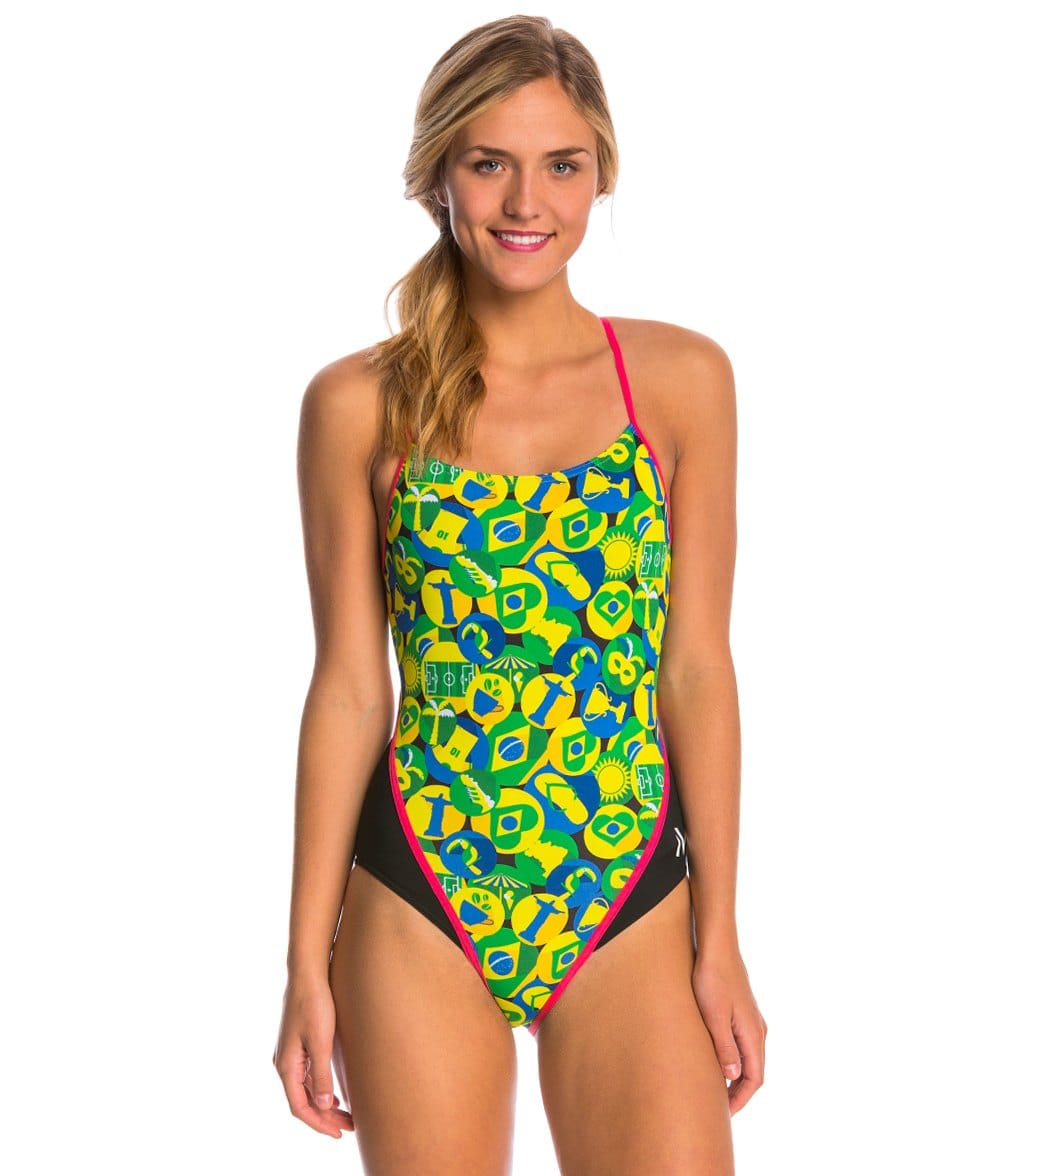 426879d607de2 MP Michael Phelps Carimbo Racerback One Piece Swimsuit at SwimOutlet.com -  Free Shipping